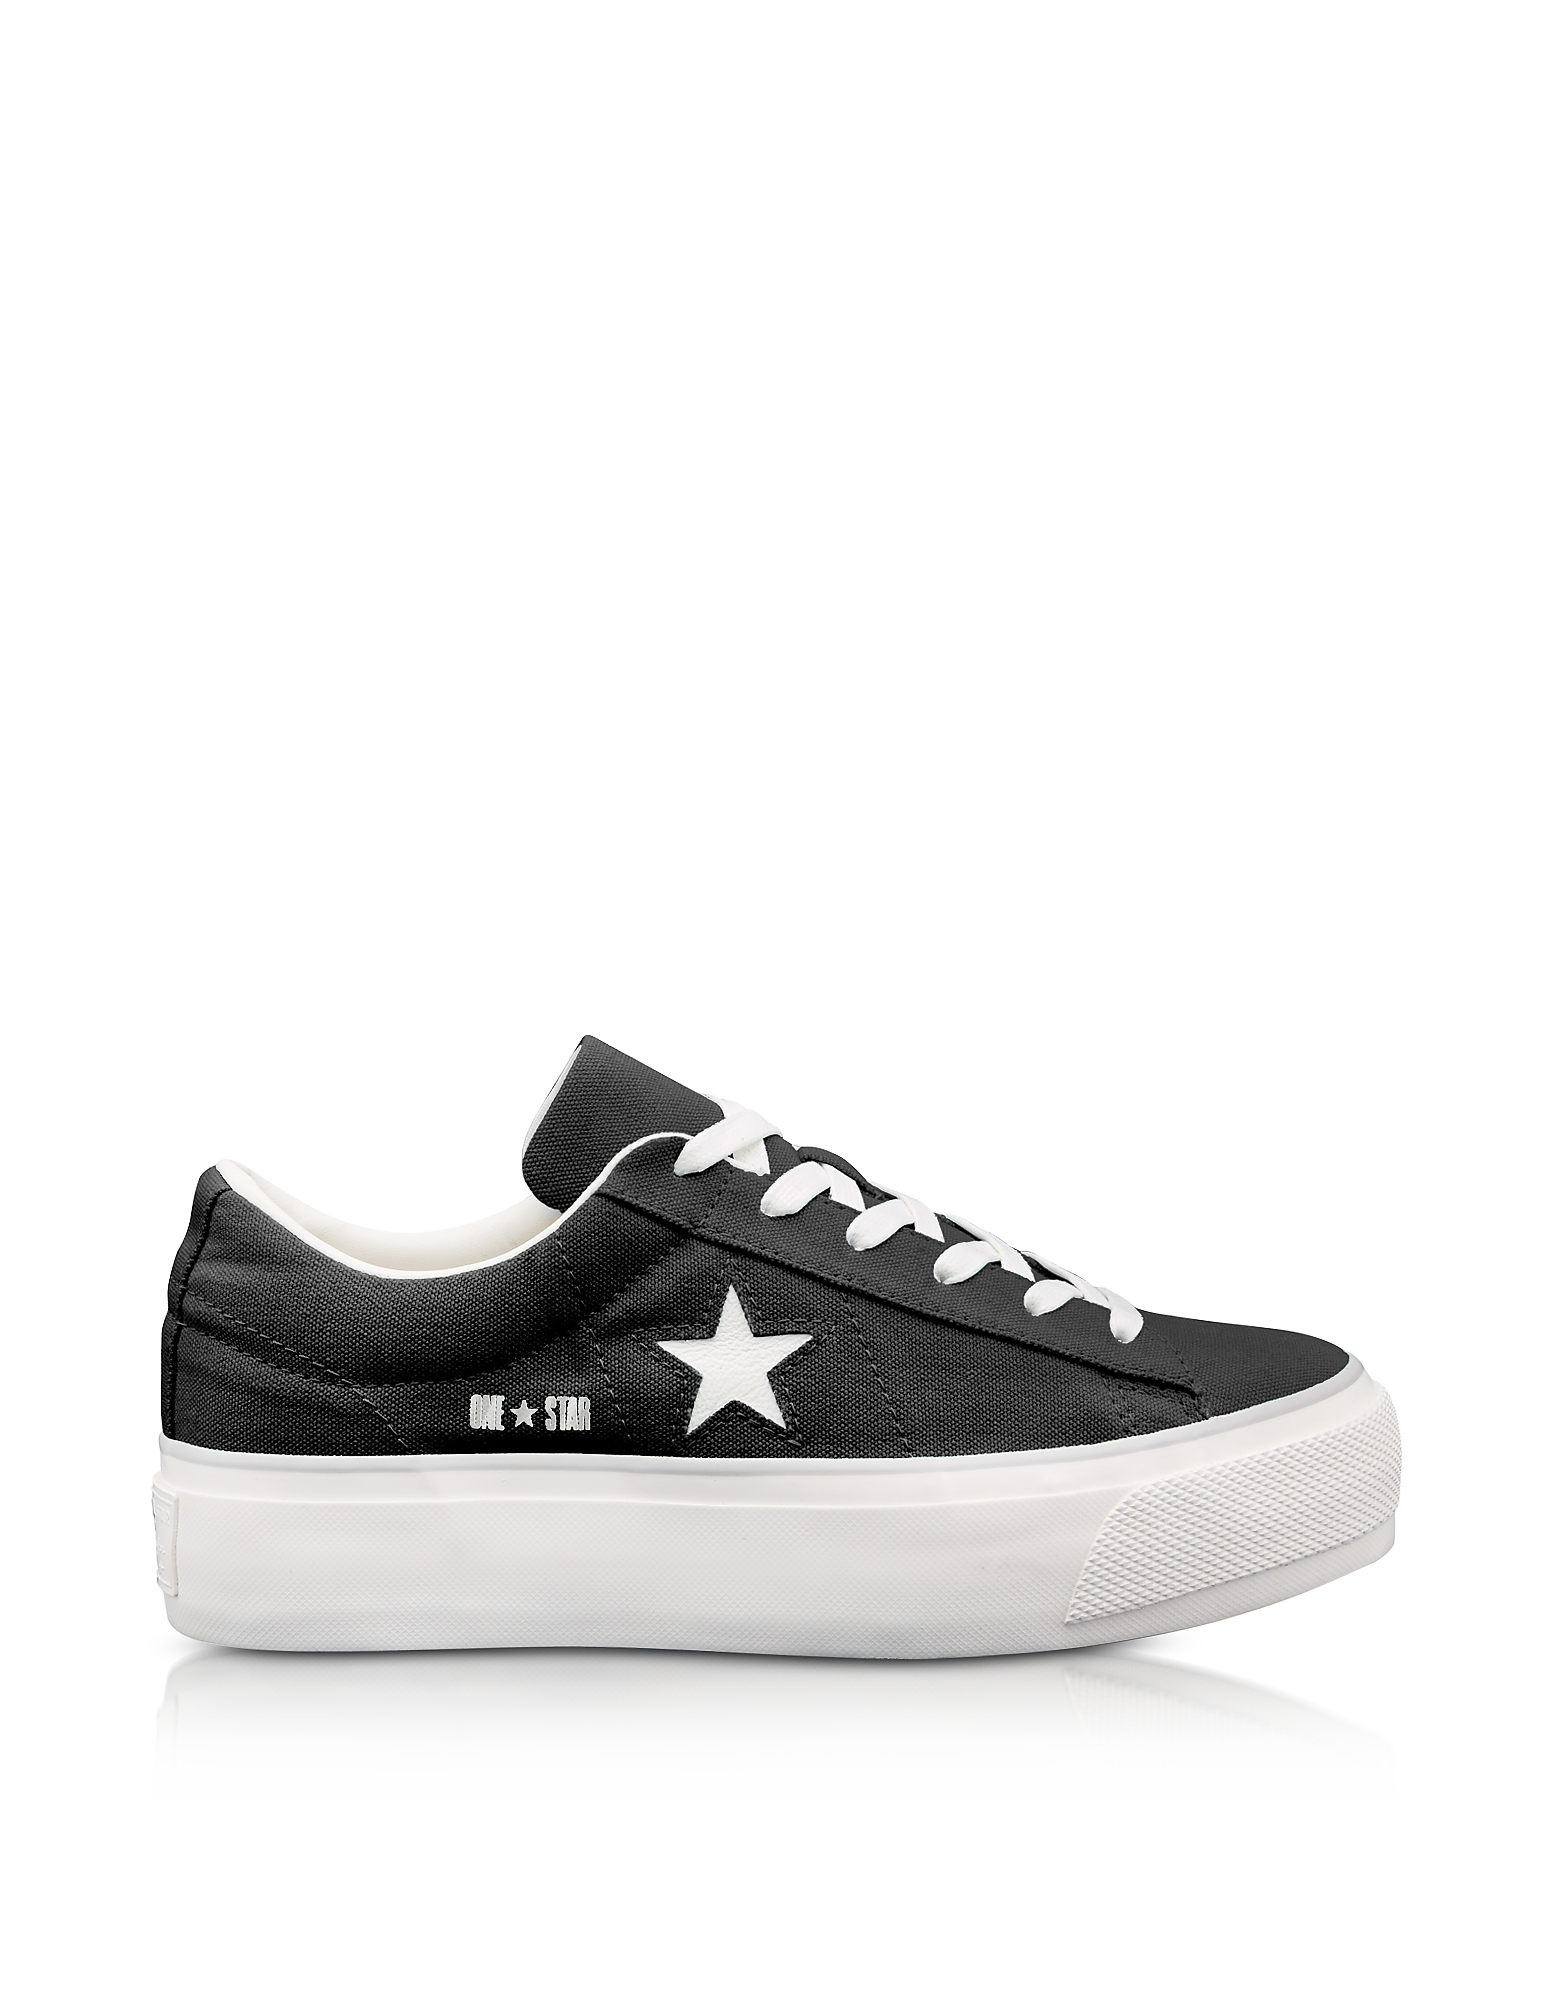 Converse Limited Edition Shoes, One Star Ox Black Canvas Flatform Sneakers